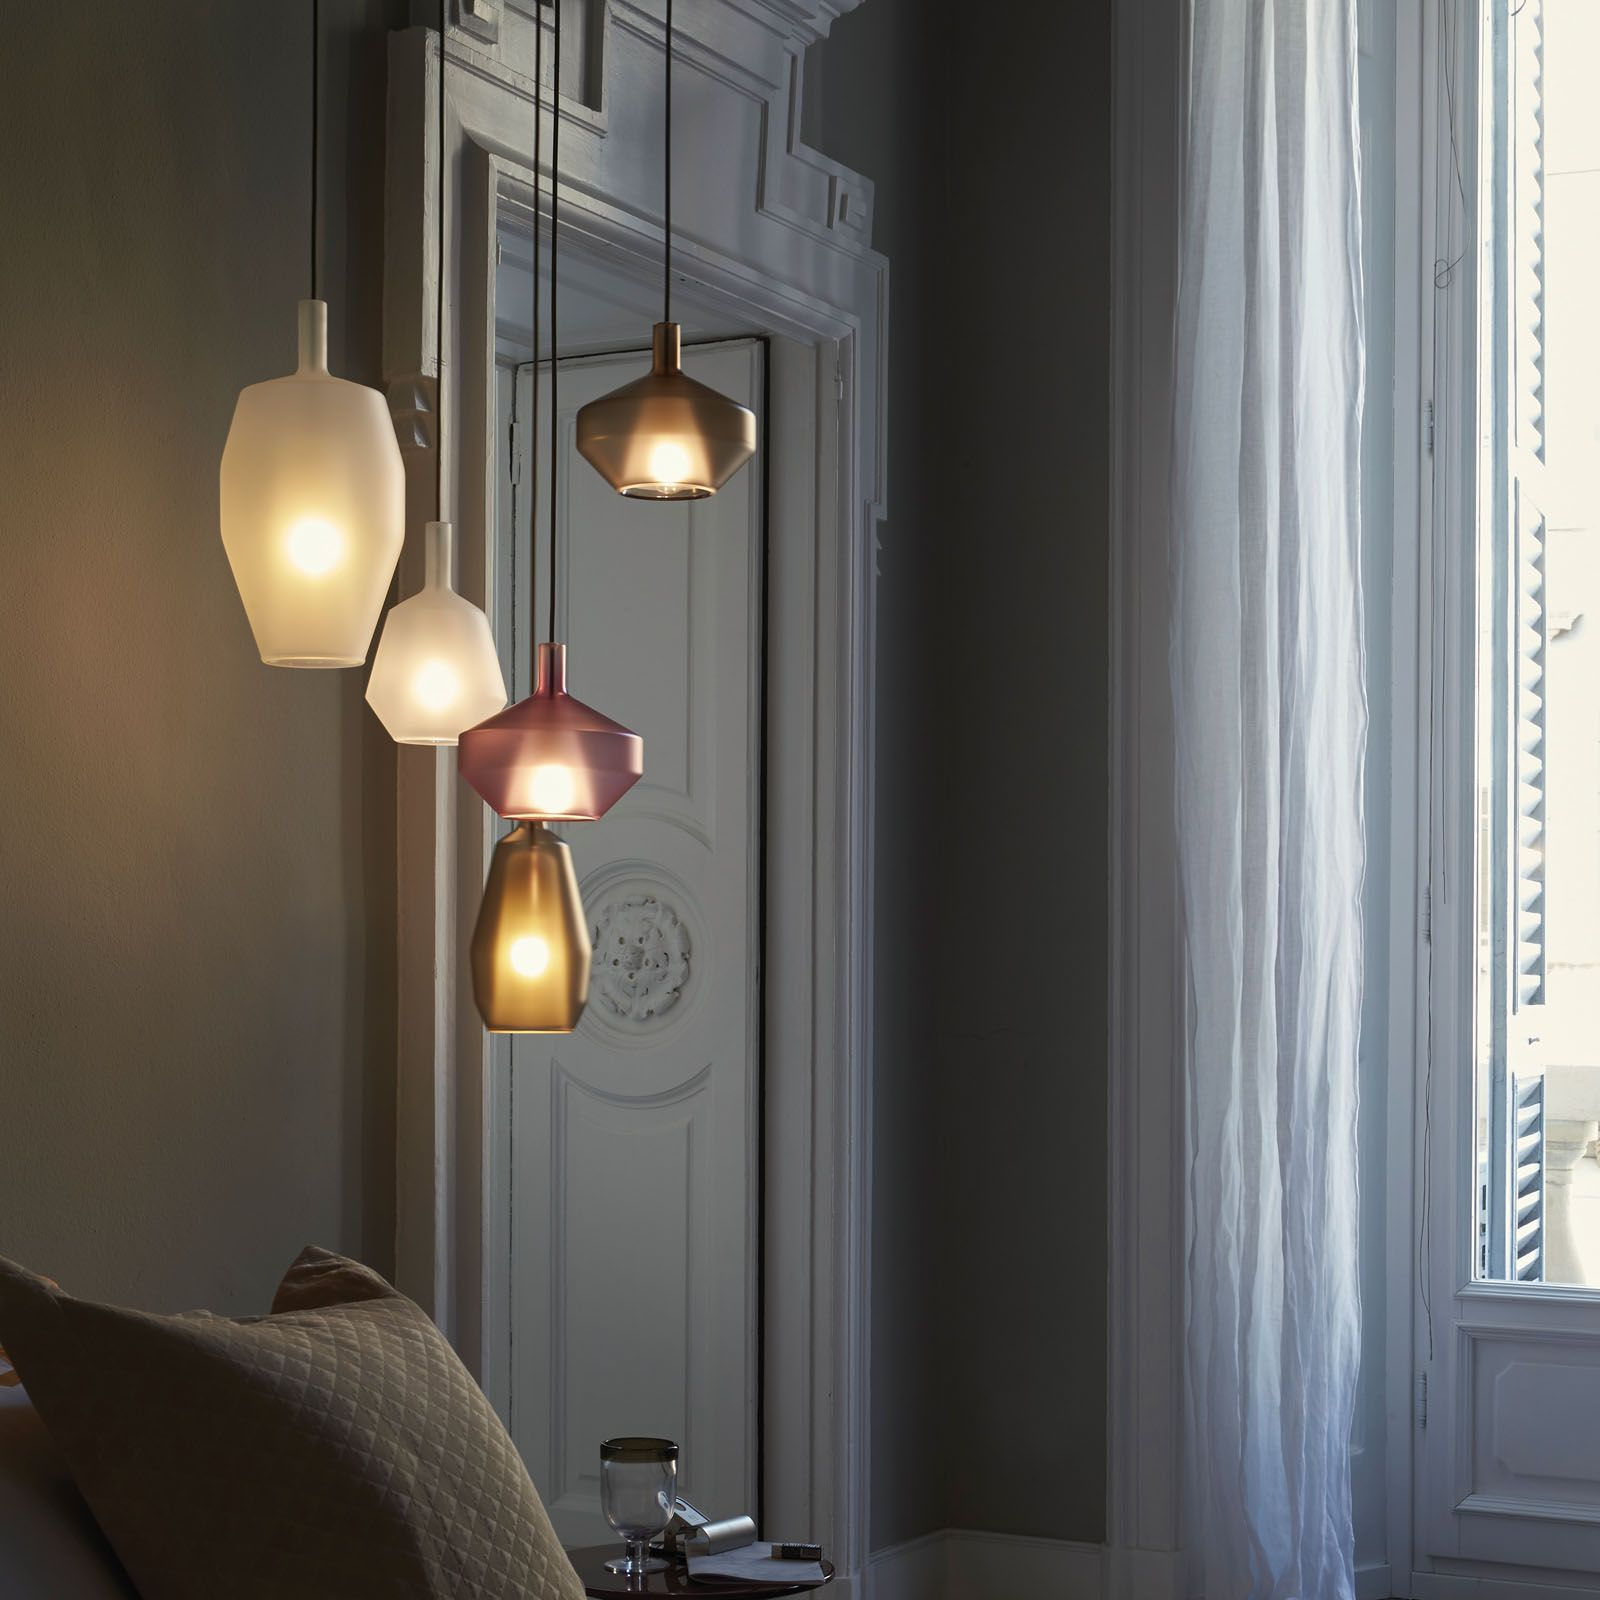 This Italian Lighting Brand Is A Must-See For Minimalists